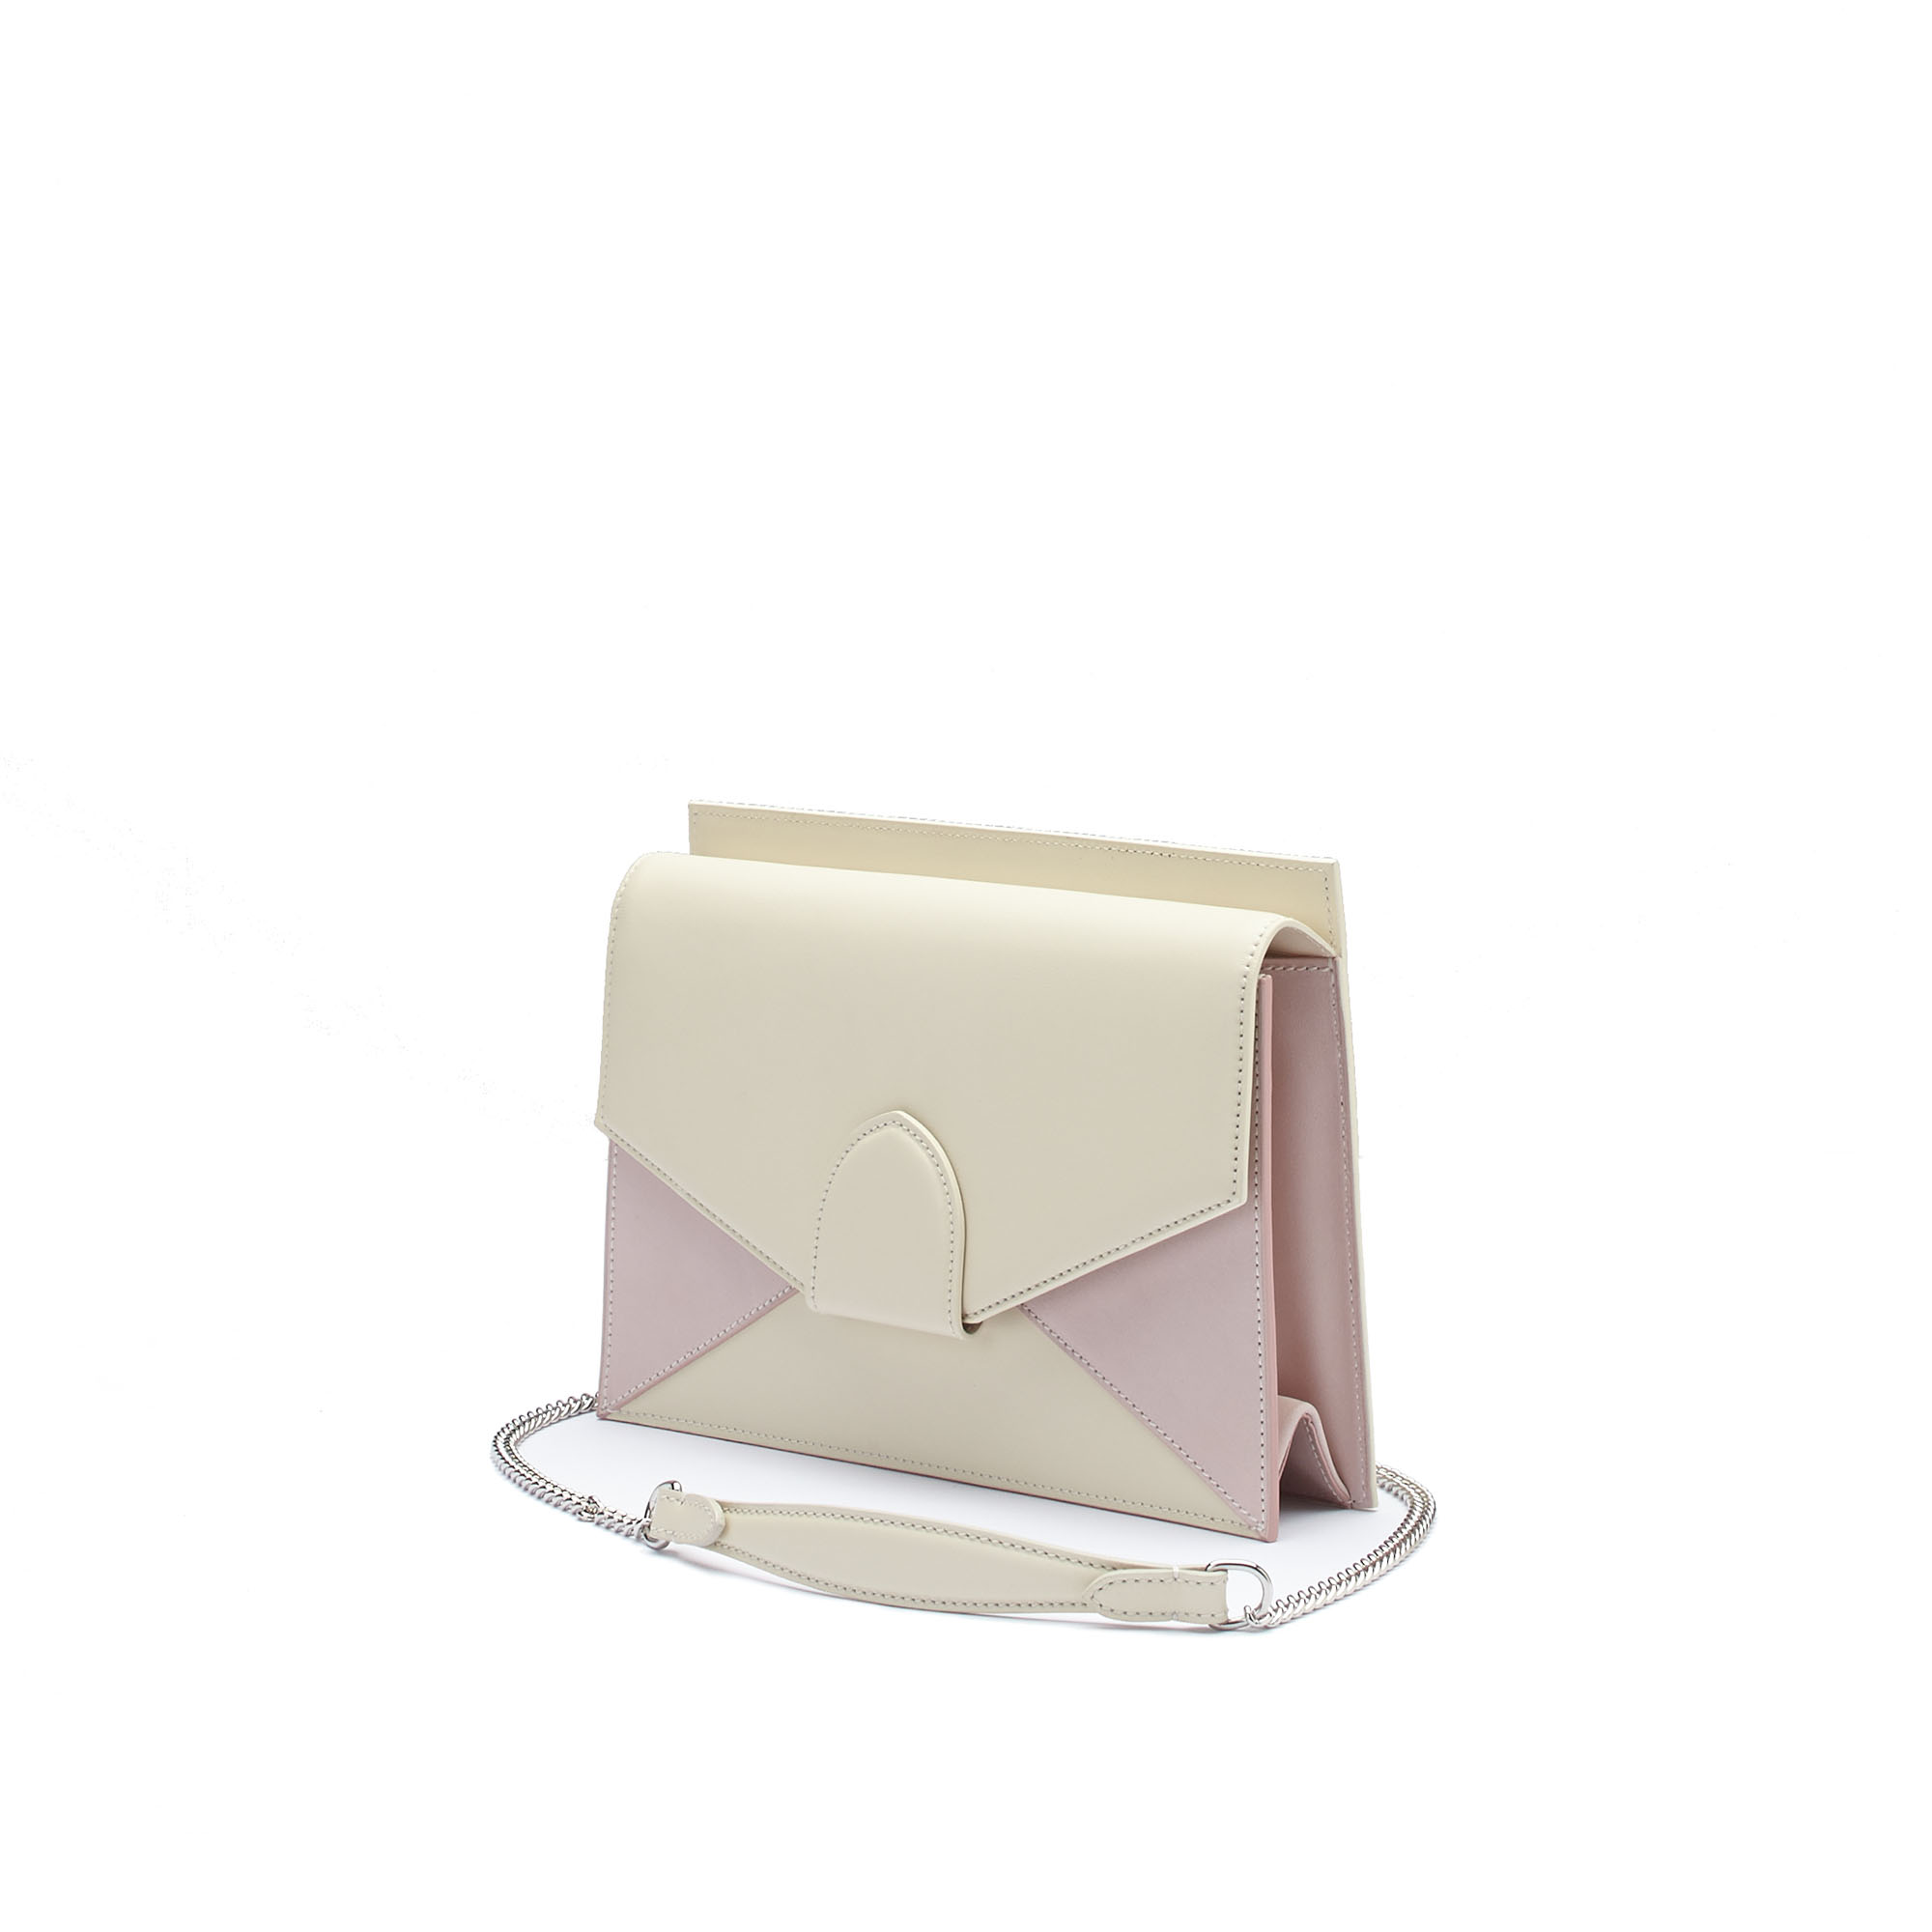 The ivory and pink french calf Dafne Chain bag by Bertoni 1949 02